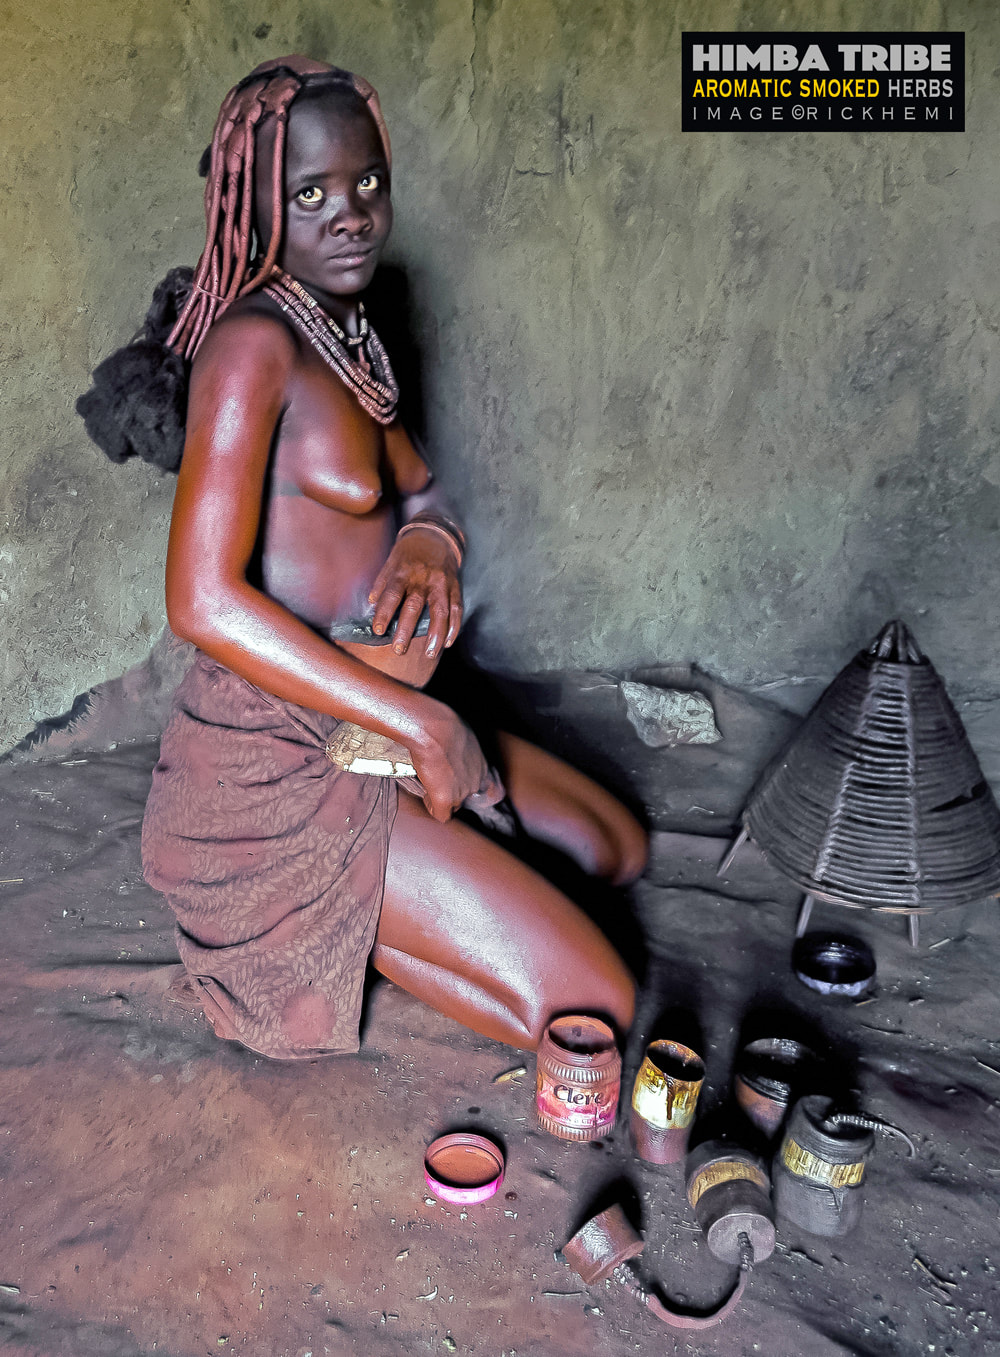 tribal Himba, aromatic smoked herb body cleansing agent, image by Rick Hemi